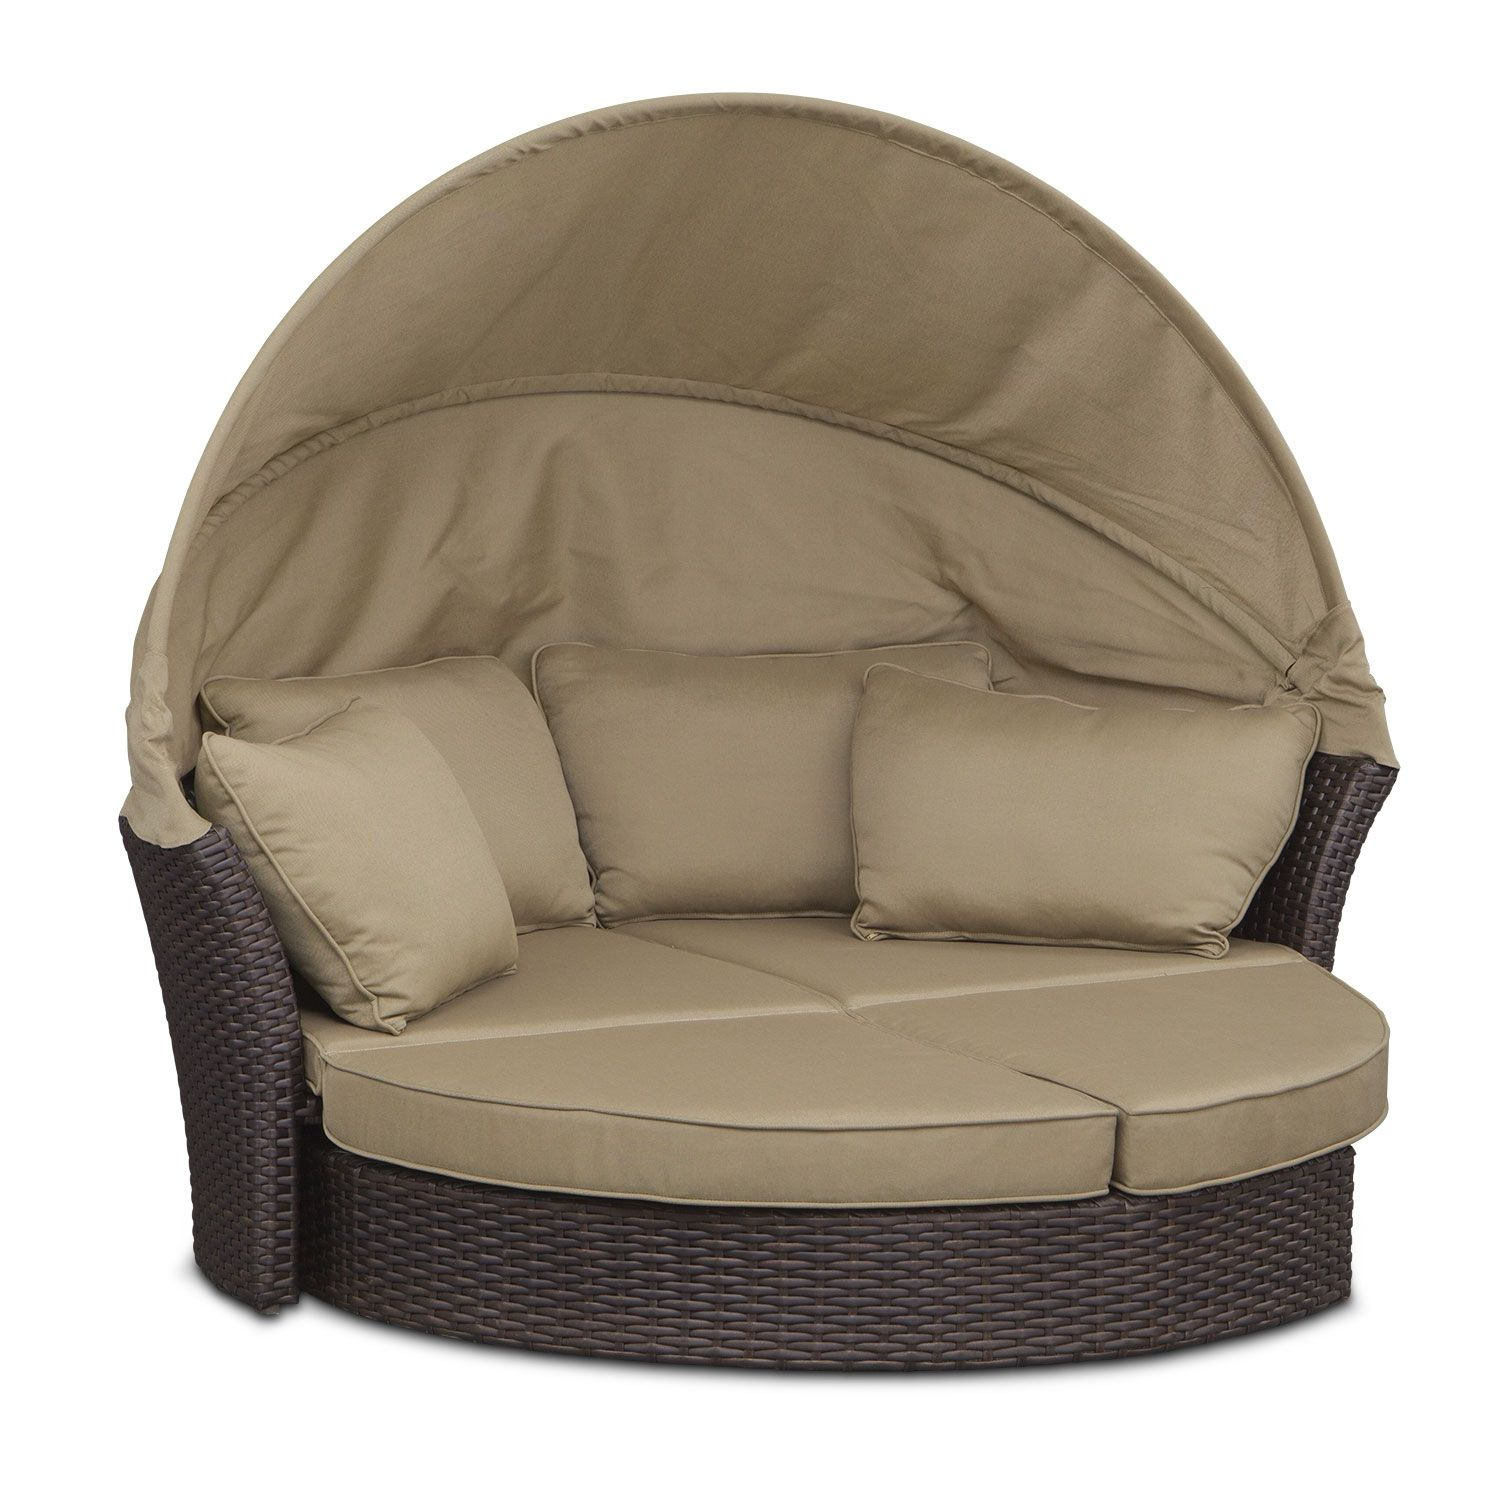 Maui Outdoor Sunbed Brown